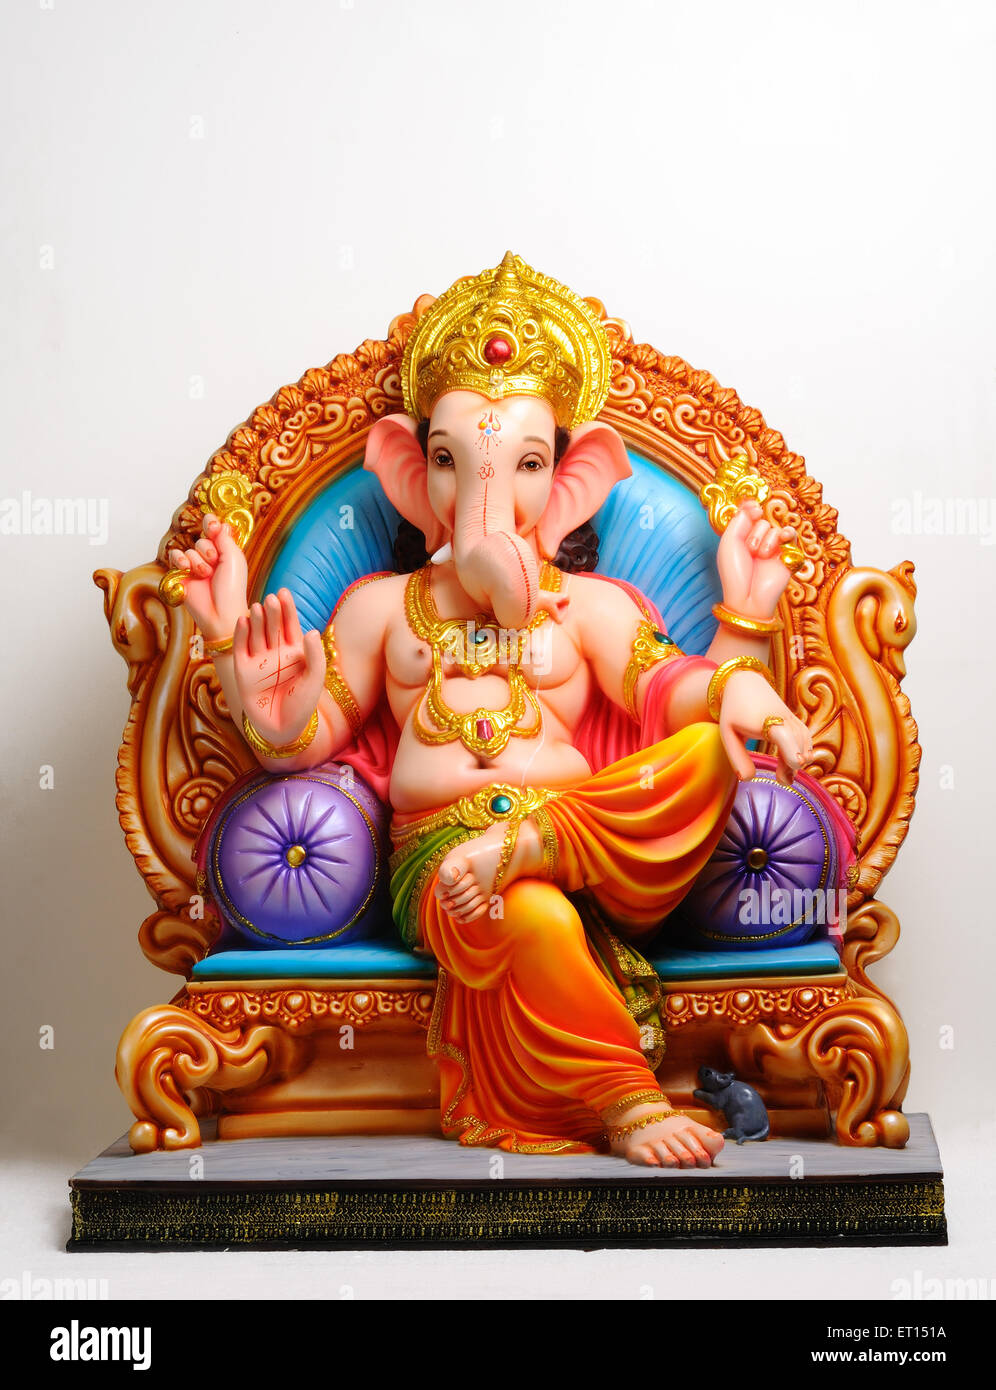 clay statue of lord ganesh sitting on throne stock photo: 83619126